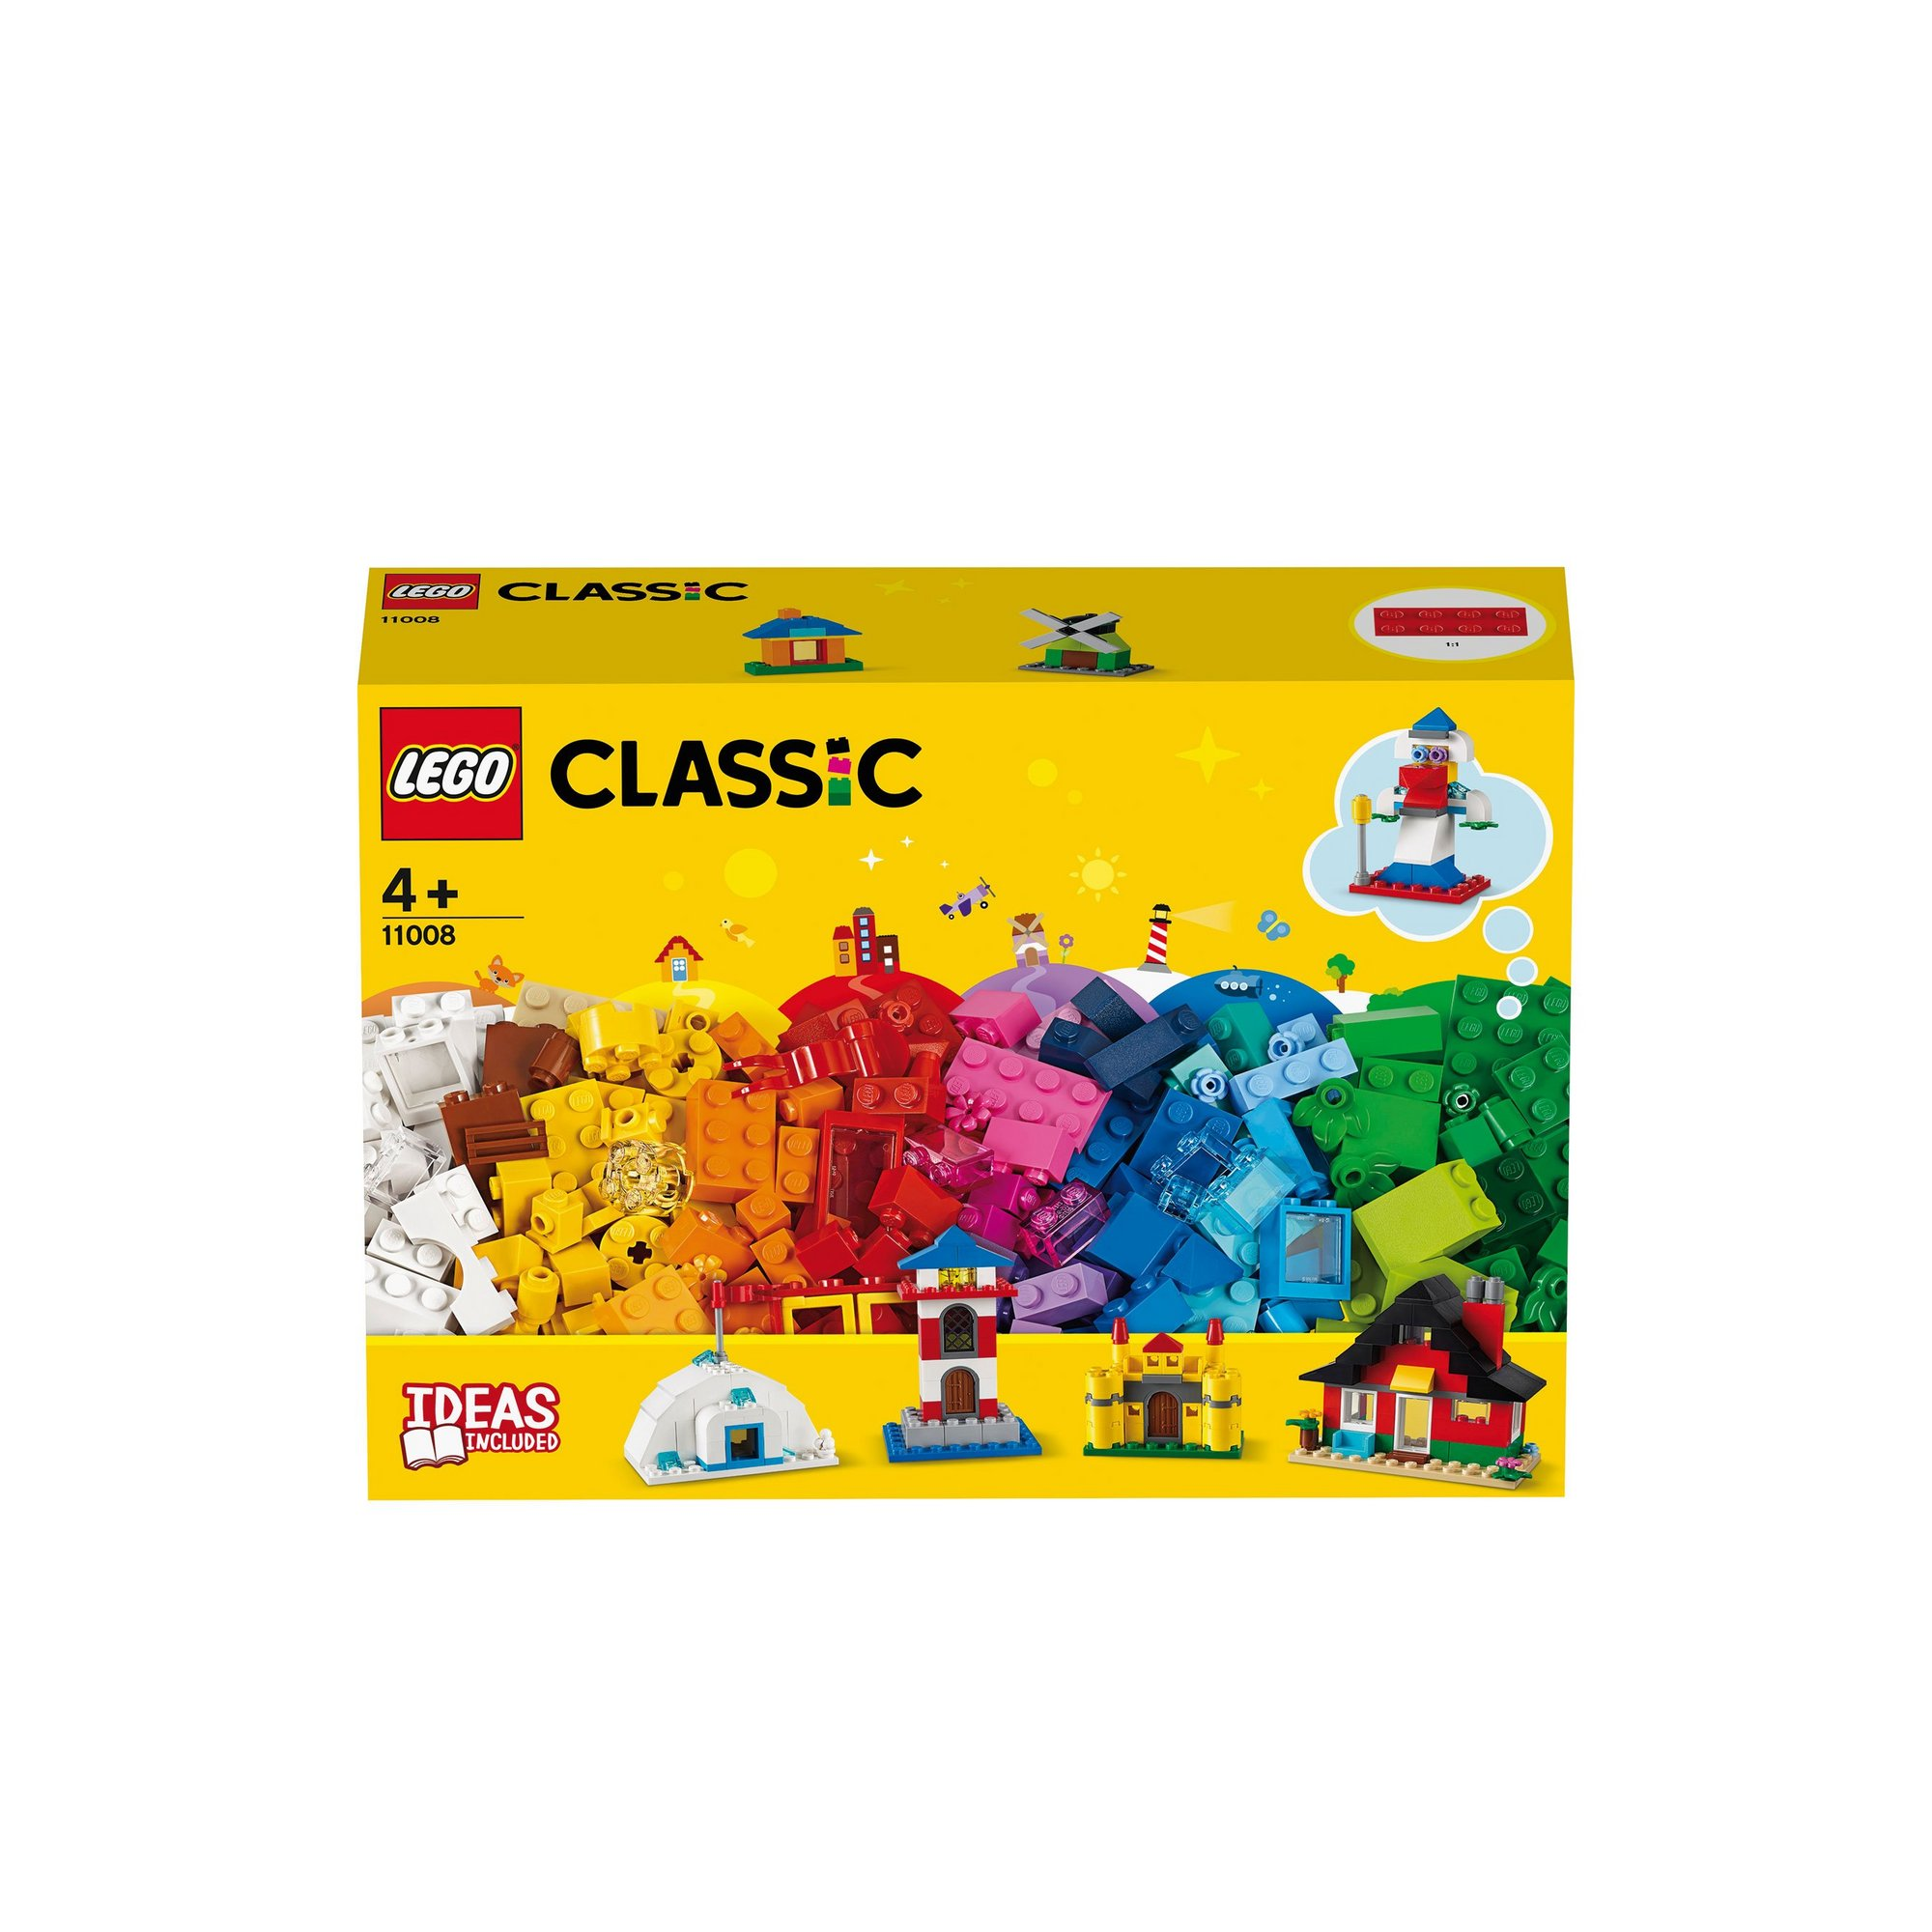 Image of LEGO Classic Bricks and Houses